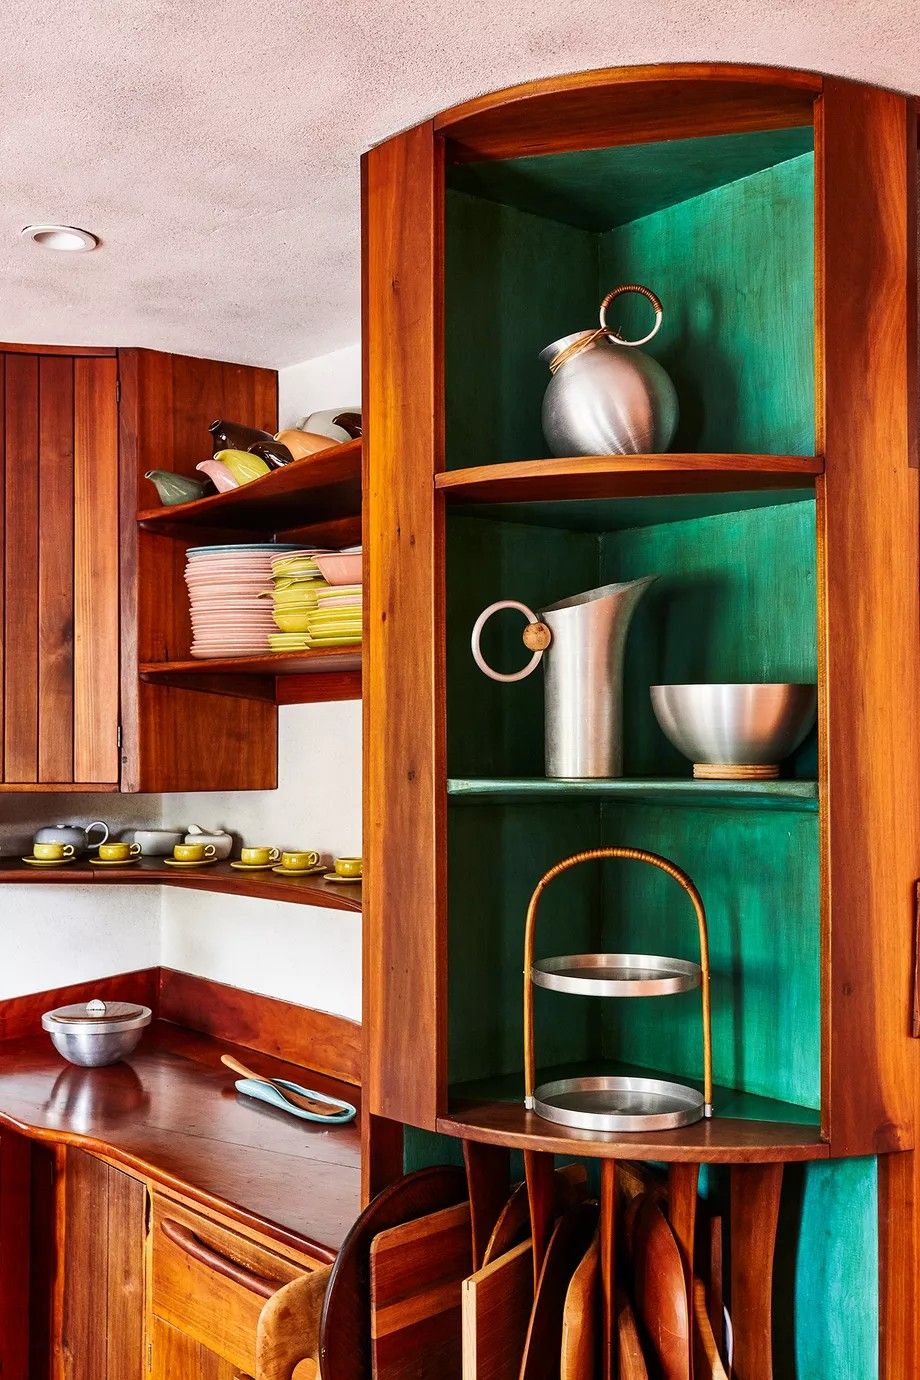 Pin by KHWeber Design on Kitchens Esherick house, Mid